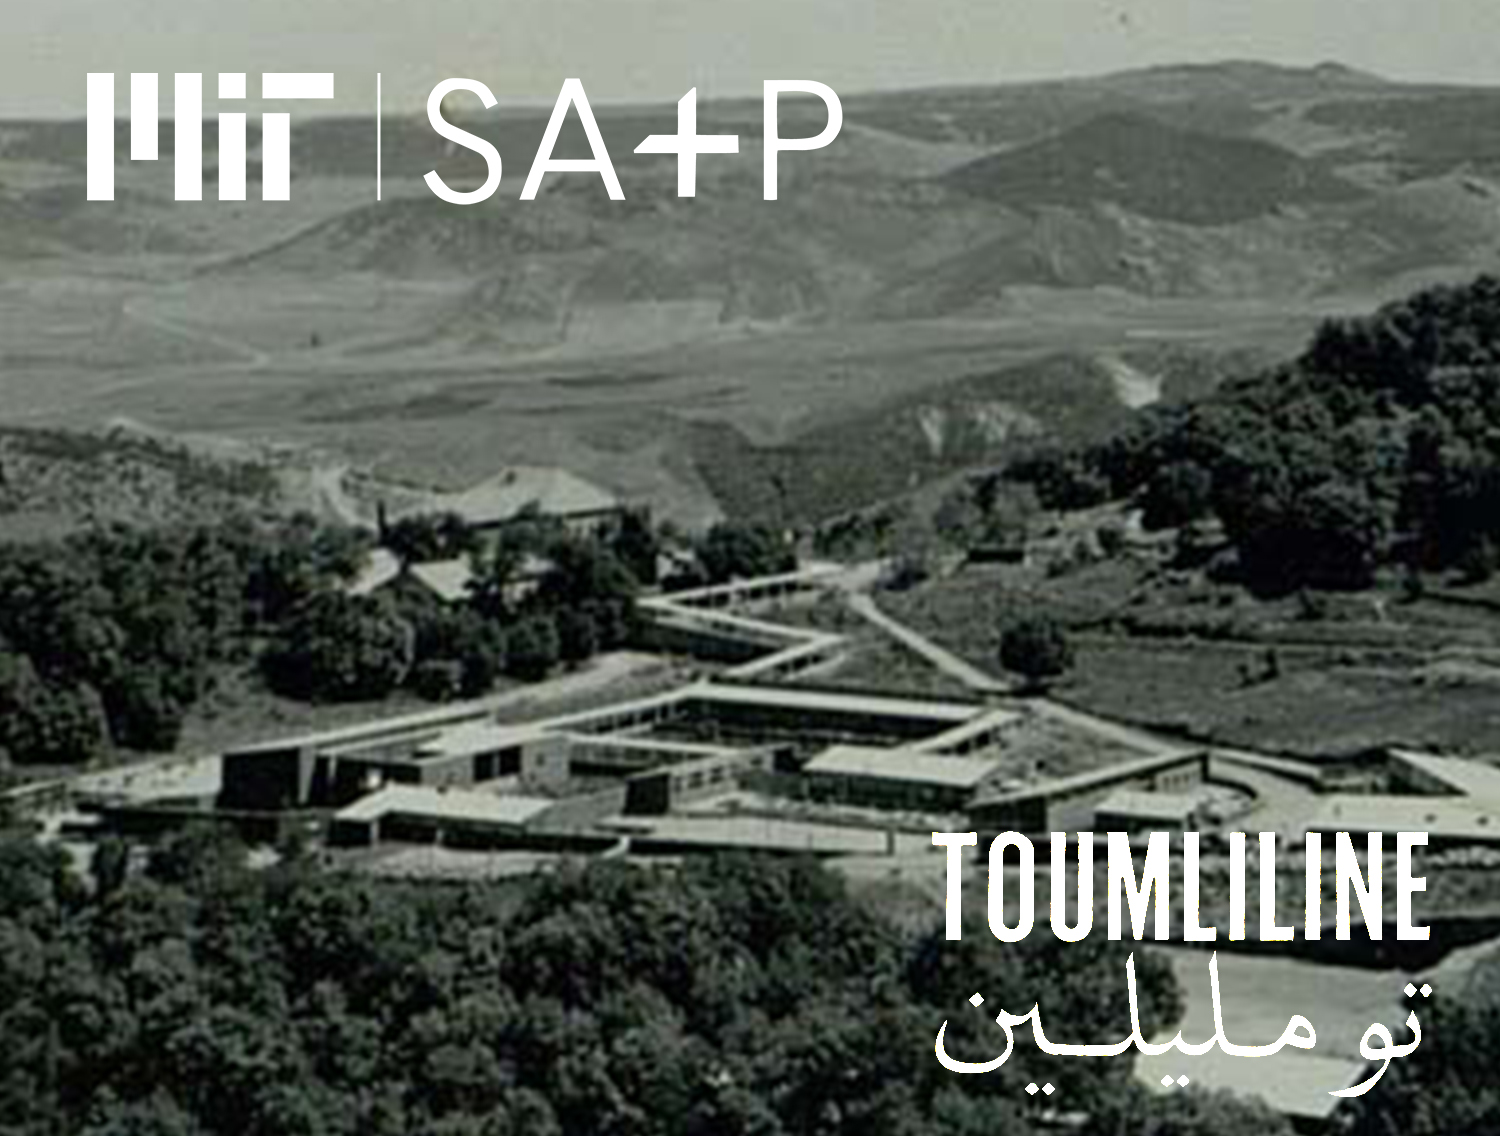 stdo - JAN. 2019 | Linna & Tarik are teaching a design studio at MIT's SA+P — students are to transform the site of the Toumliline Monastery into an experimental campus of learning